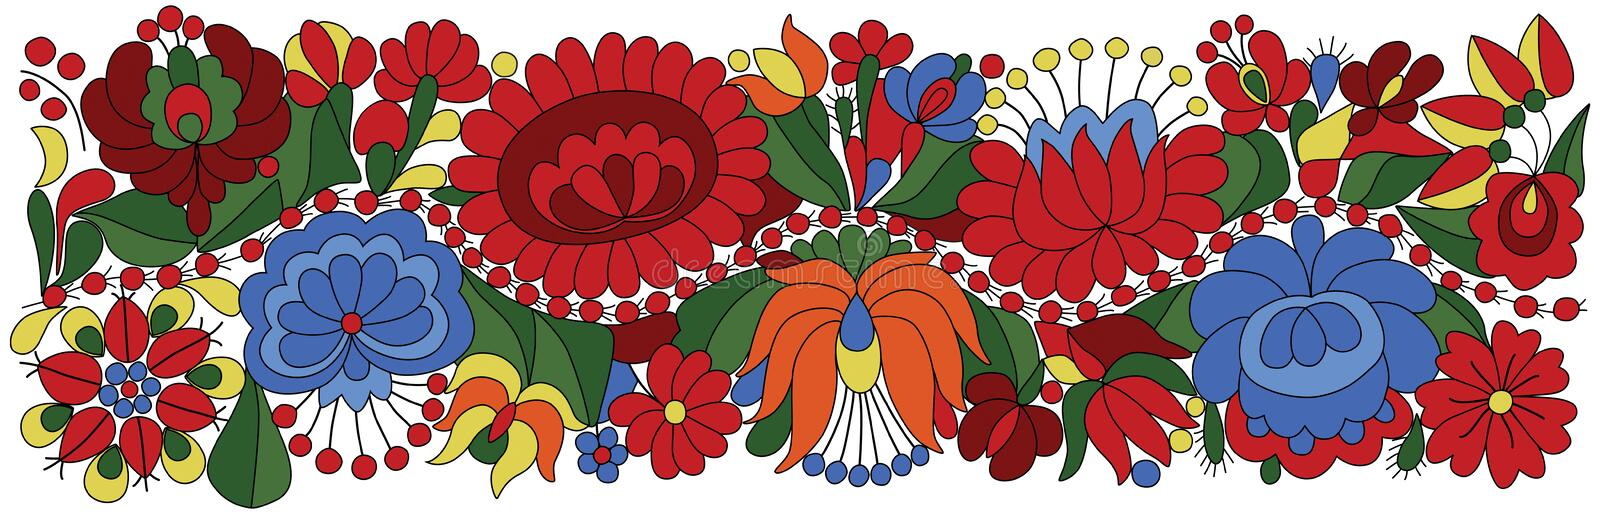 Hungarian Embroidery Motif vector illustration